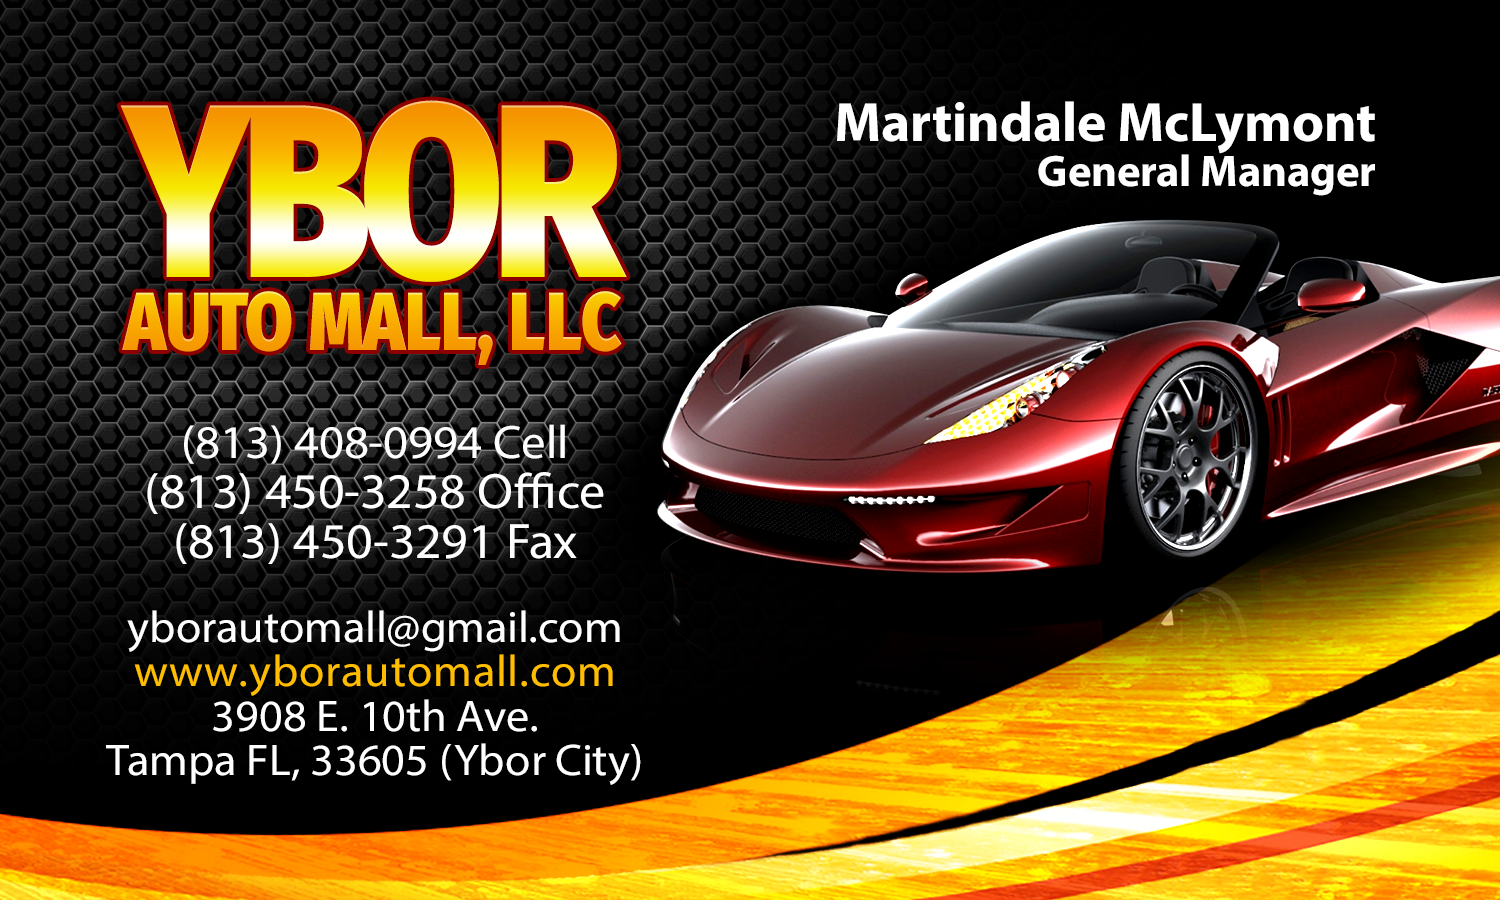 ybor auto mall BC martin_preview